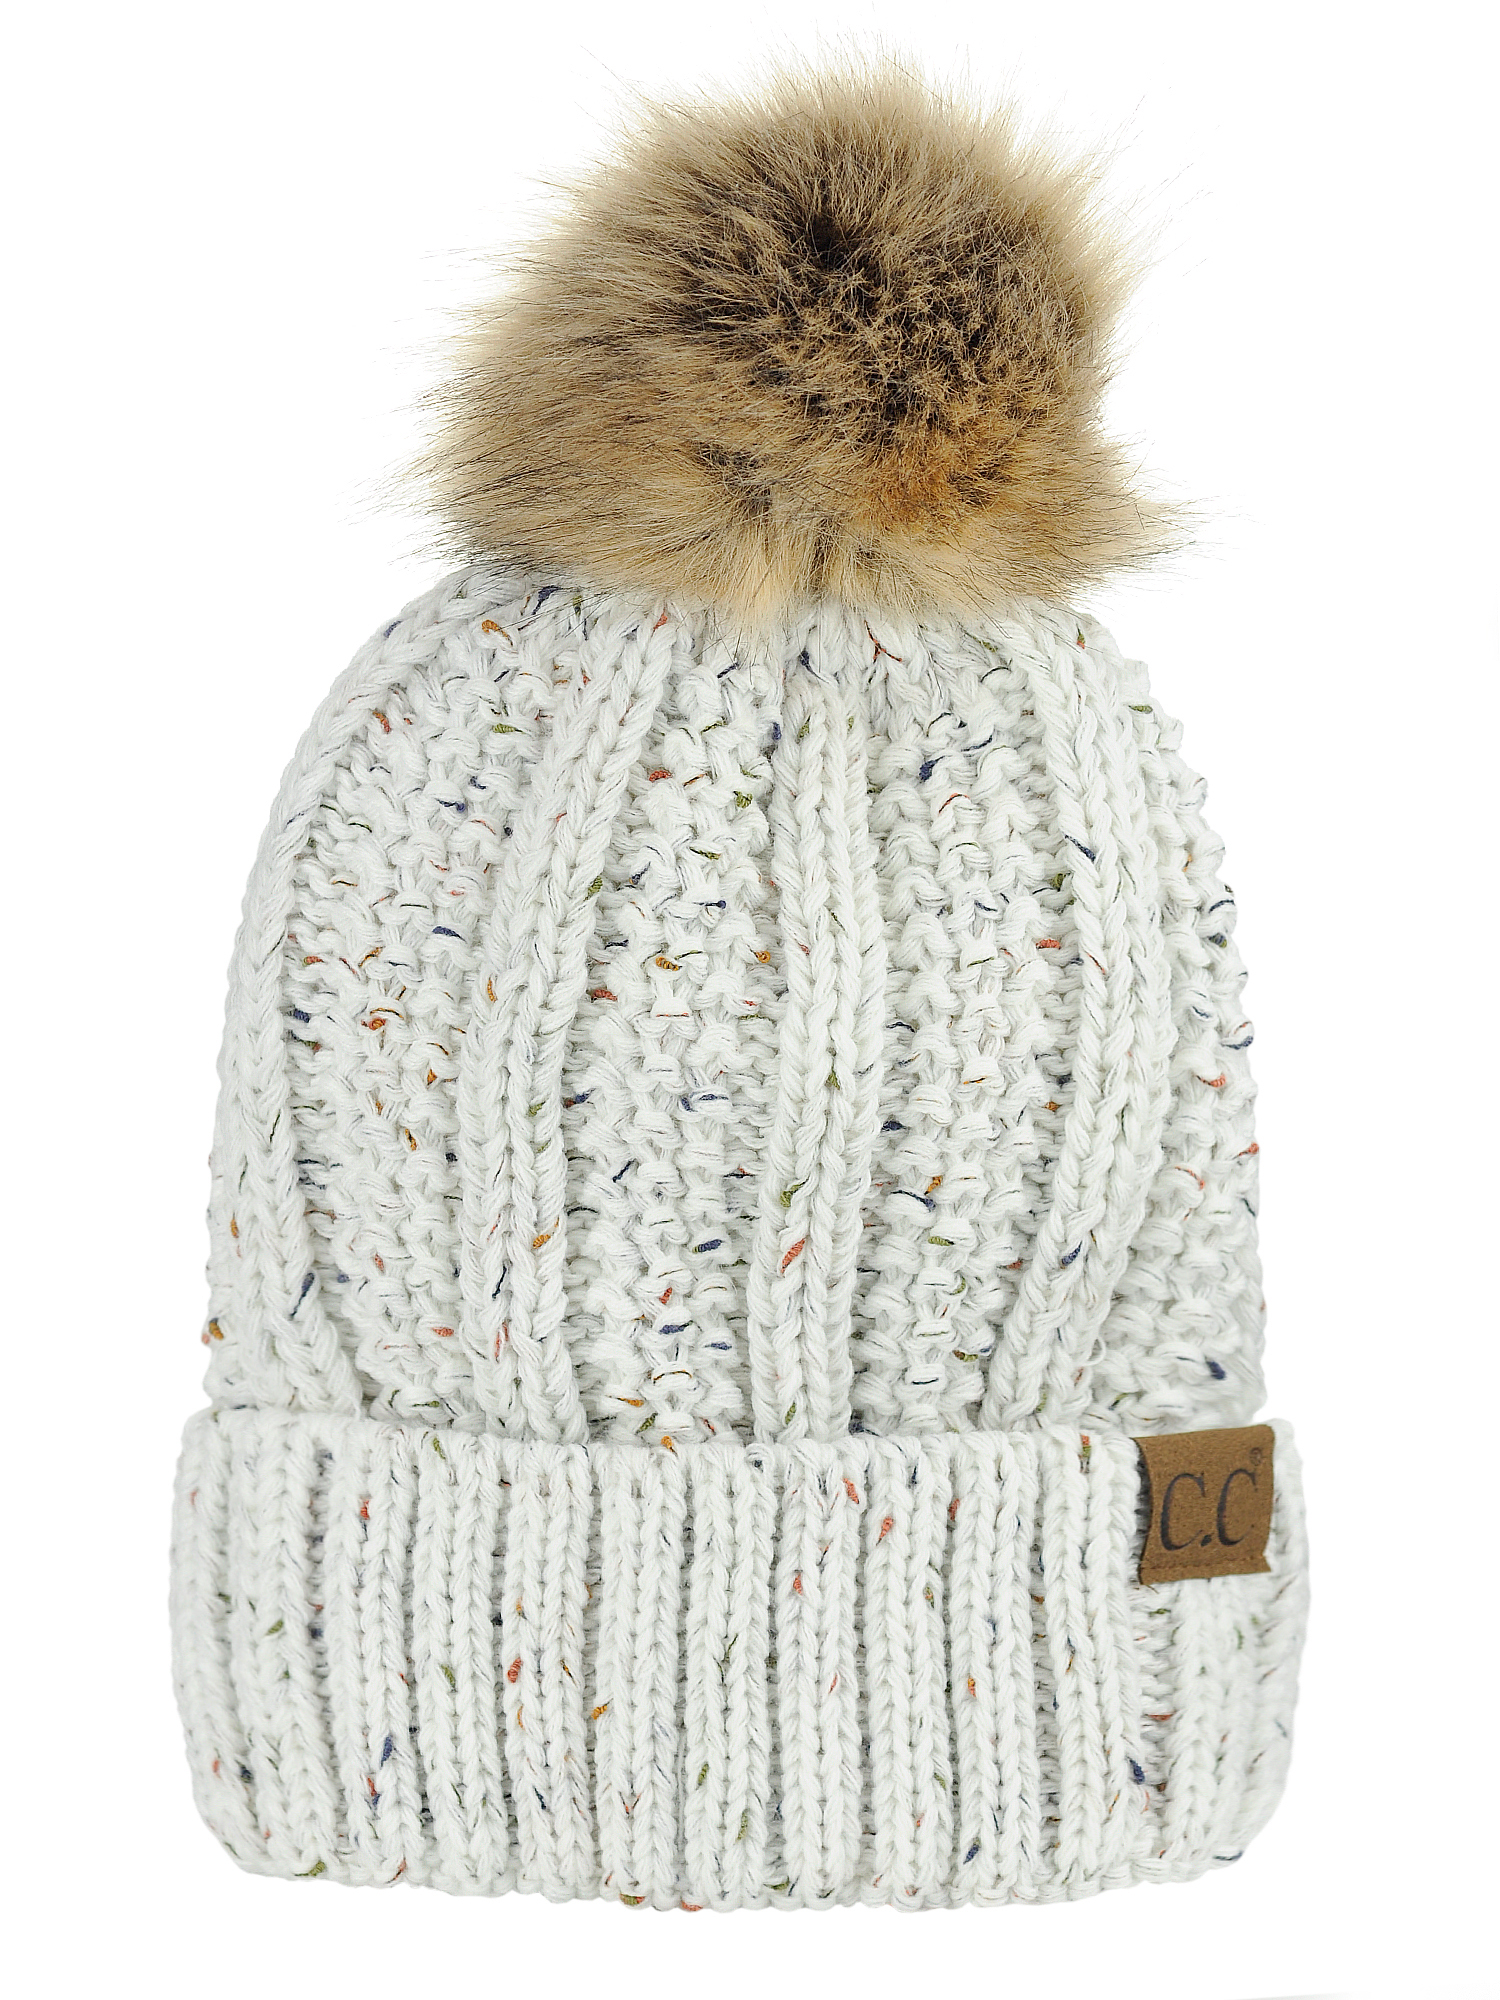 C.C Thick Cable Knit Faux Fuzzy Fur Pom Fleece Lined Skull Cap Cuff Beanie 72953fb4580